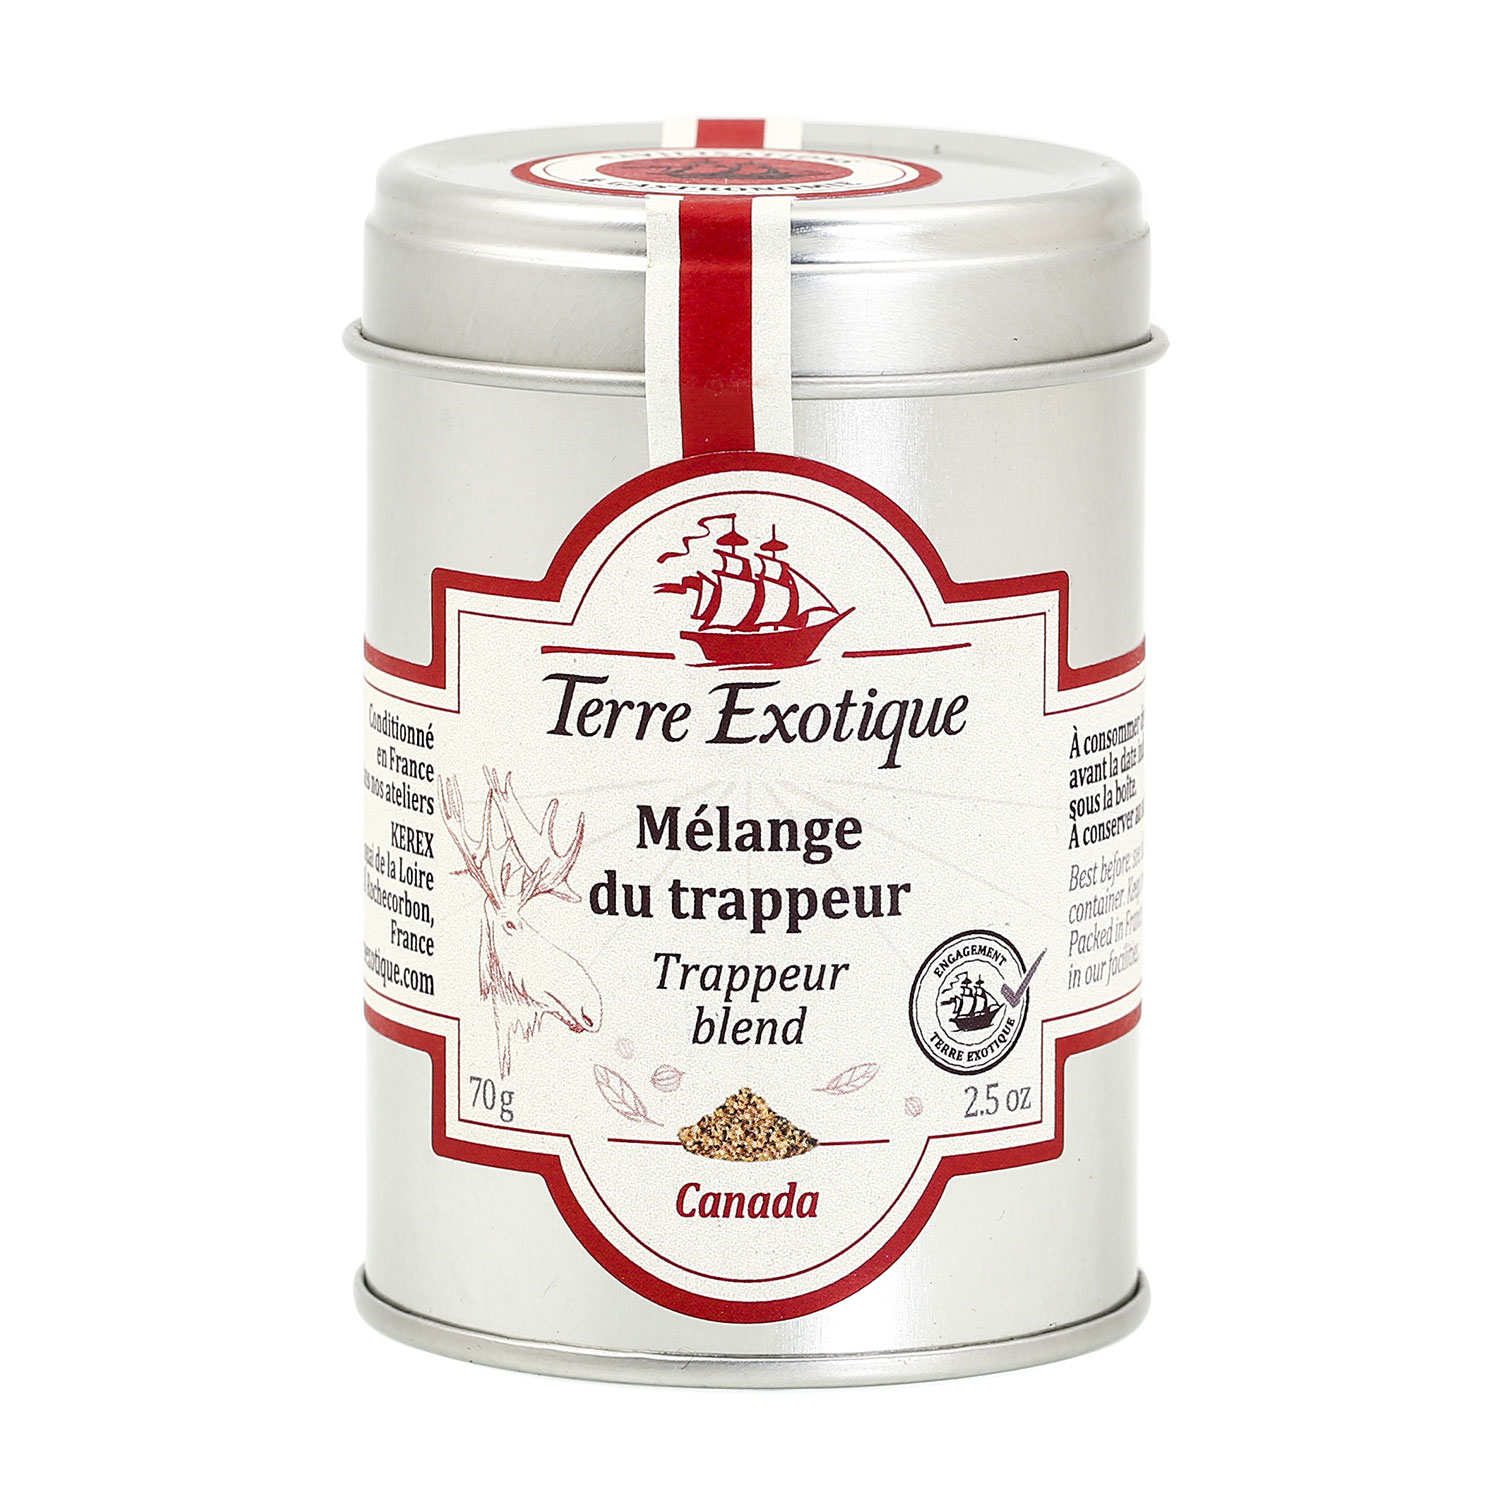 Trapper's Spice Blend from Canada